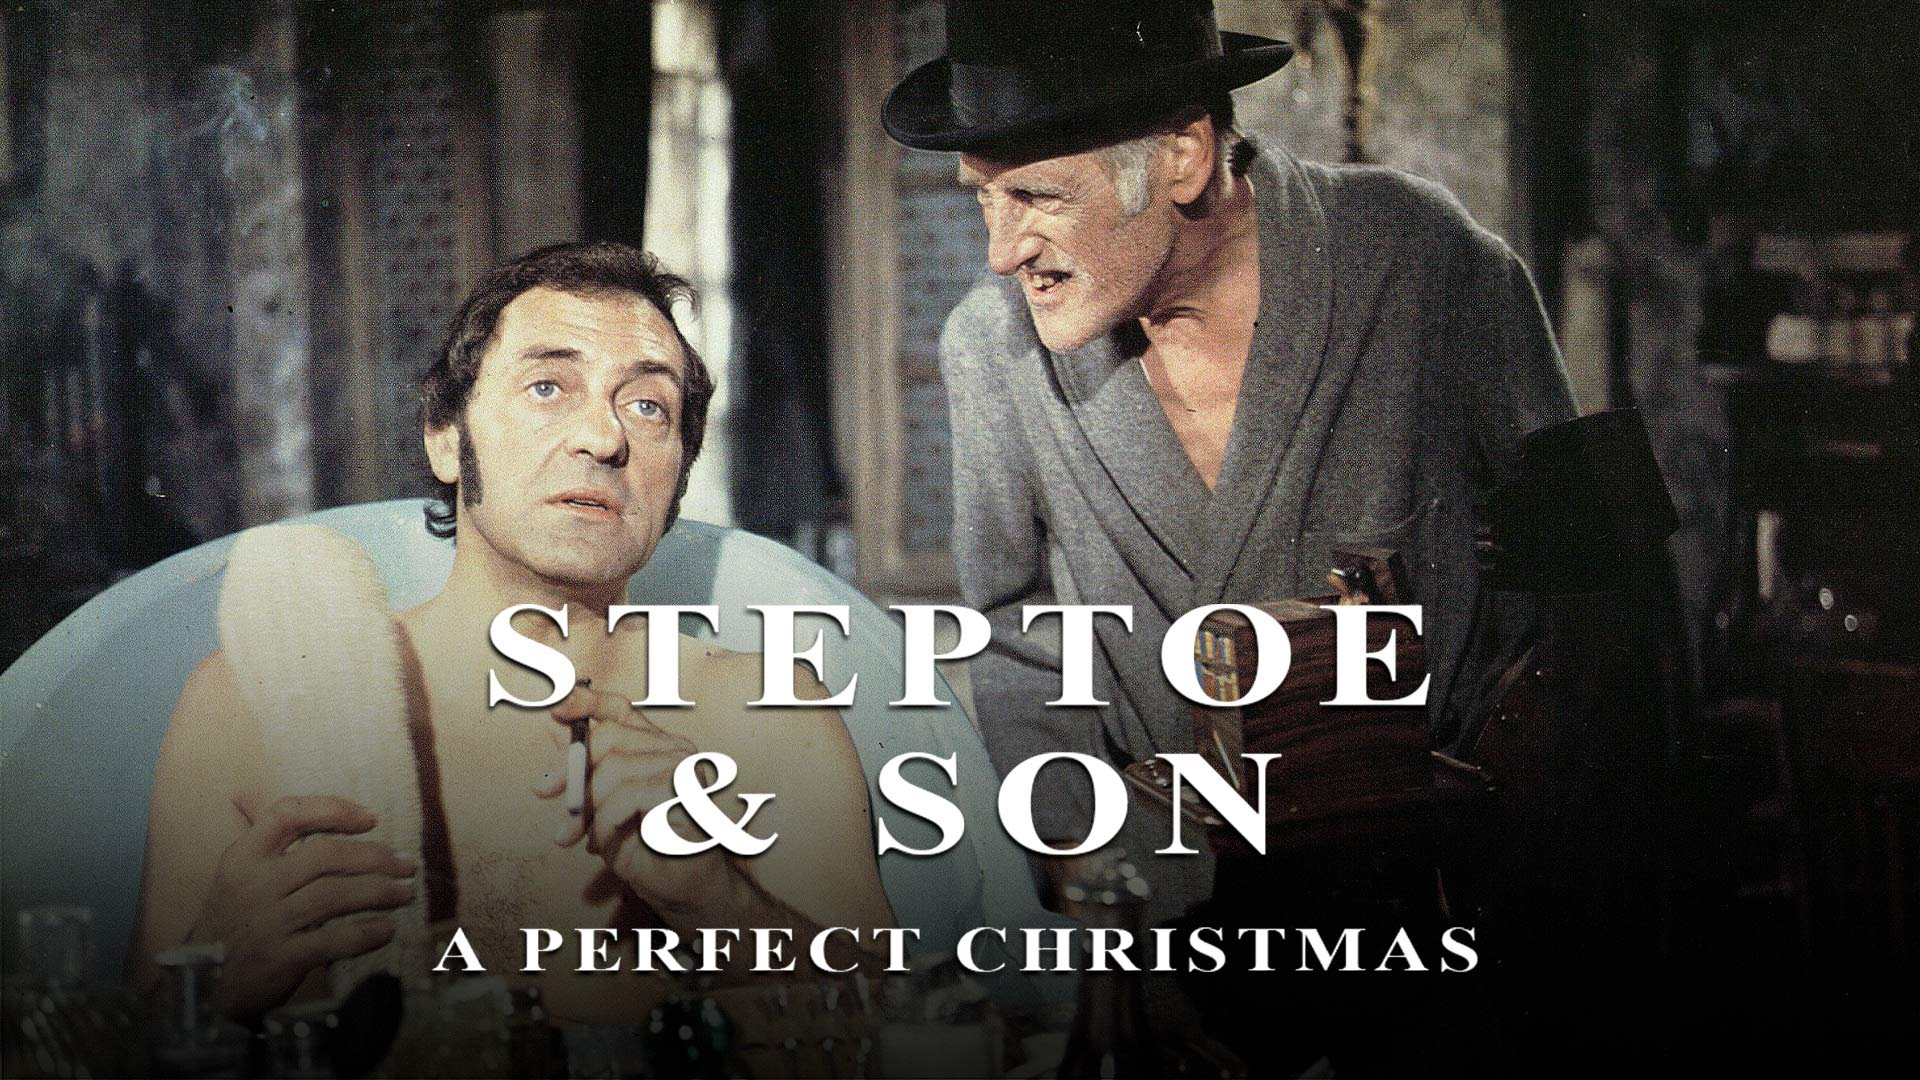 Steptoe & Son: A Perfect Christmas on BritBox UK